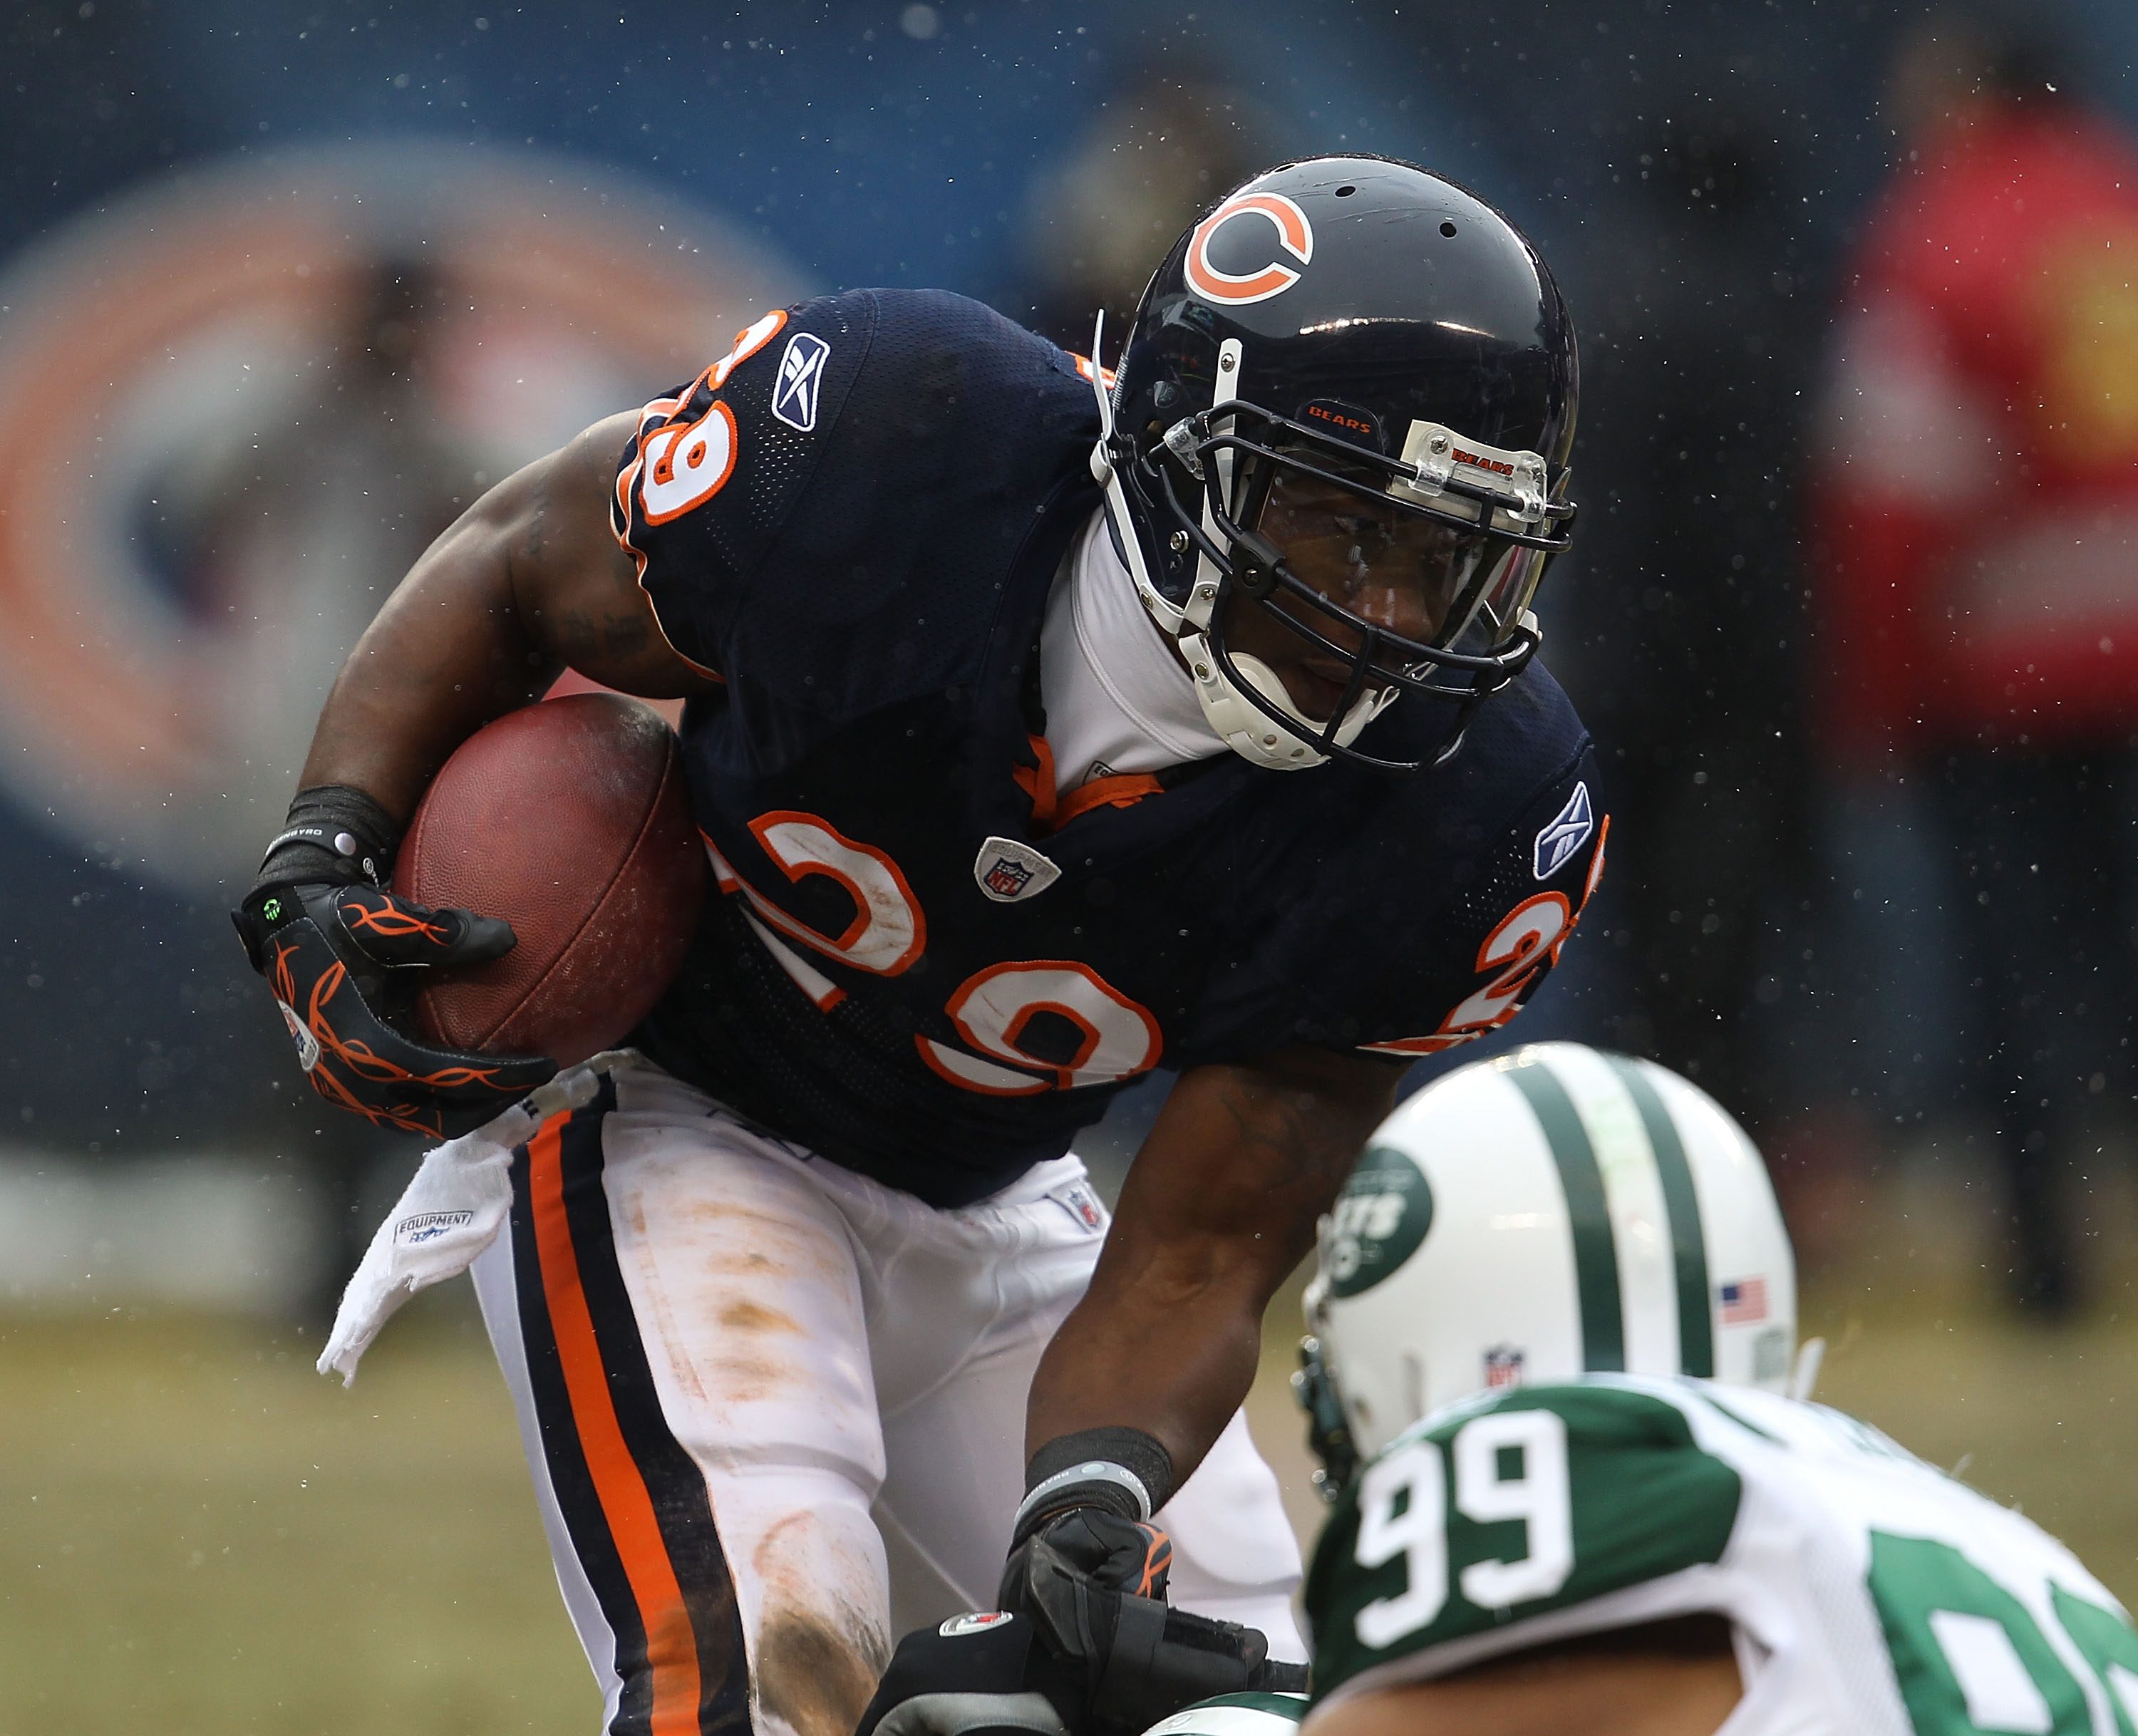 CHICAGO, IL - DECEMBER 26: Chester Taylor #29 of the Chicago Bears runs against the New York Jets at Soldier Field on December 26, 2010 in Chicago, Illinois. The Bears defeated the Jets 38-34. (Photo by Jonathan Daniel/Getty Images)